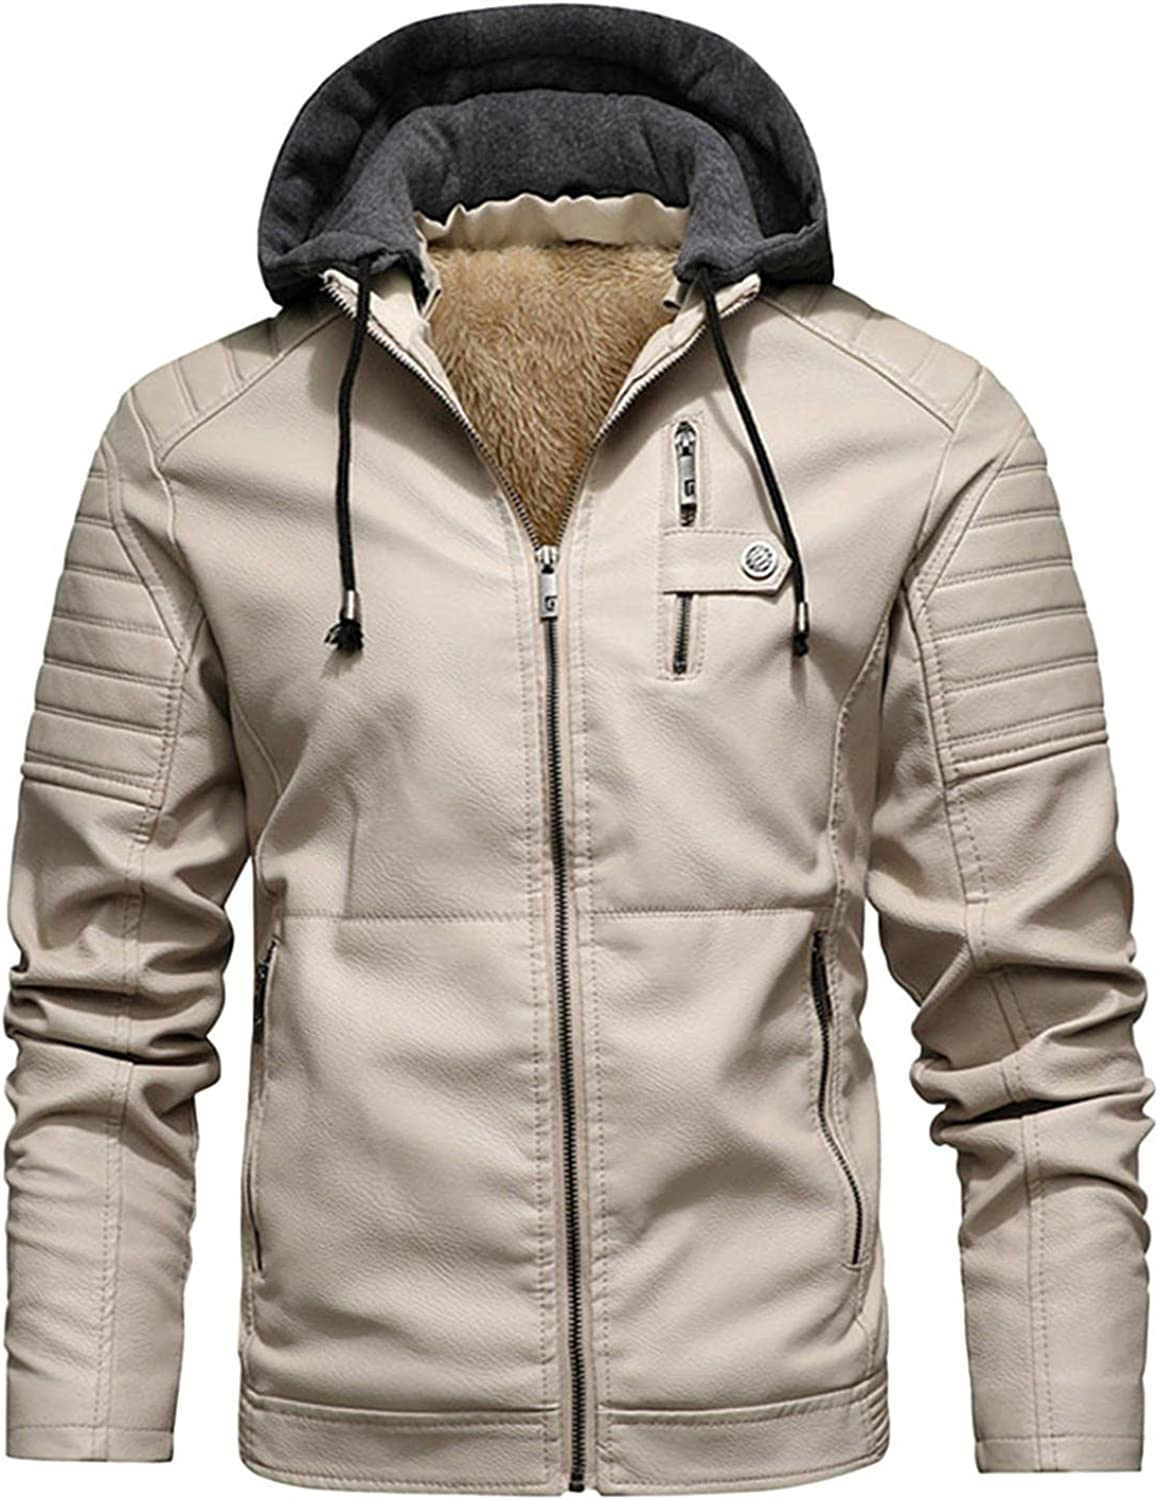 Stoota Men's Stand Collar Warm PU Faux Leather Zip-Up Motorcycle Digging Bag Hooded Jacket Coat Outwear Removable Hood